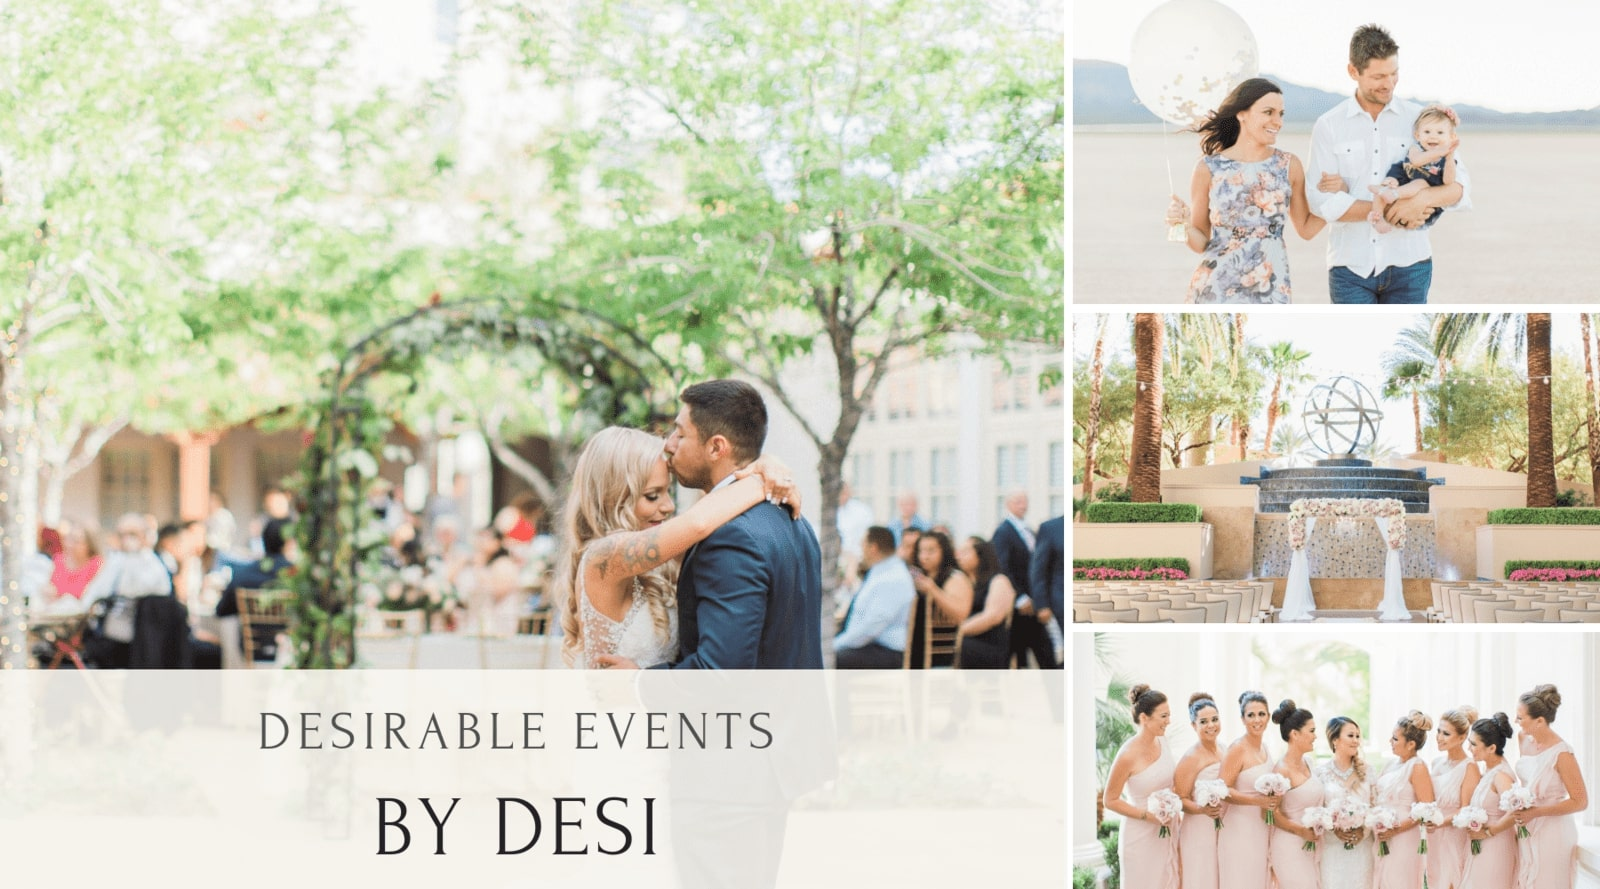 Desirable_Events_by_Desi